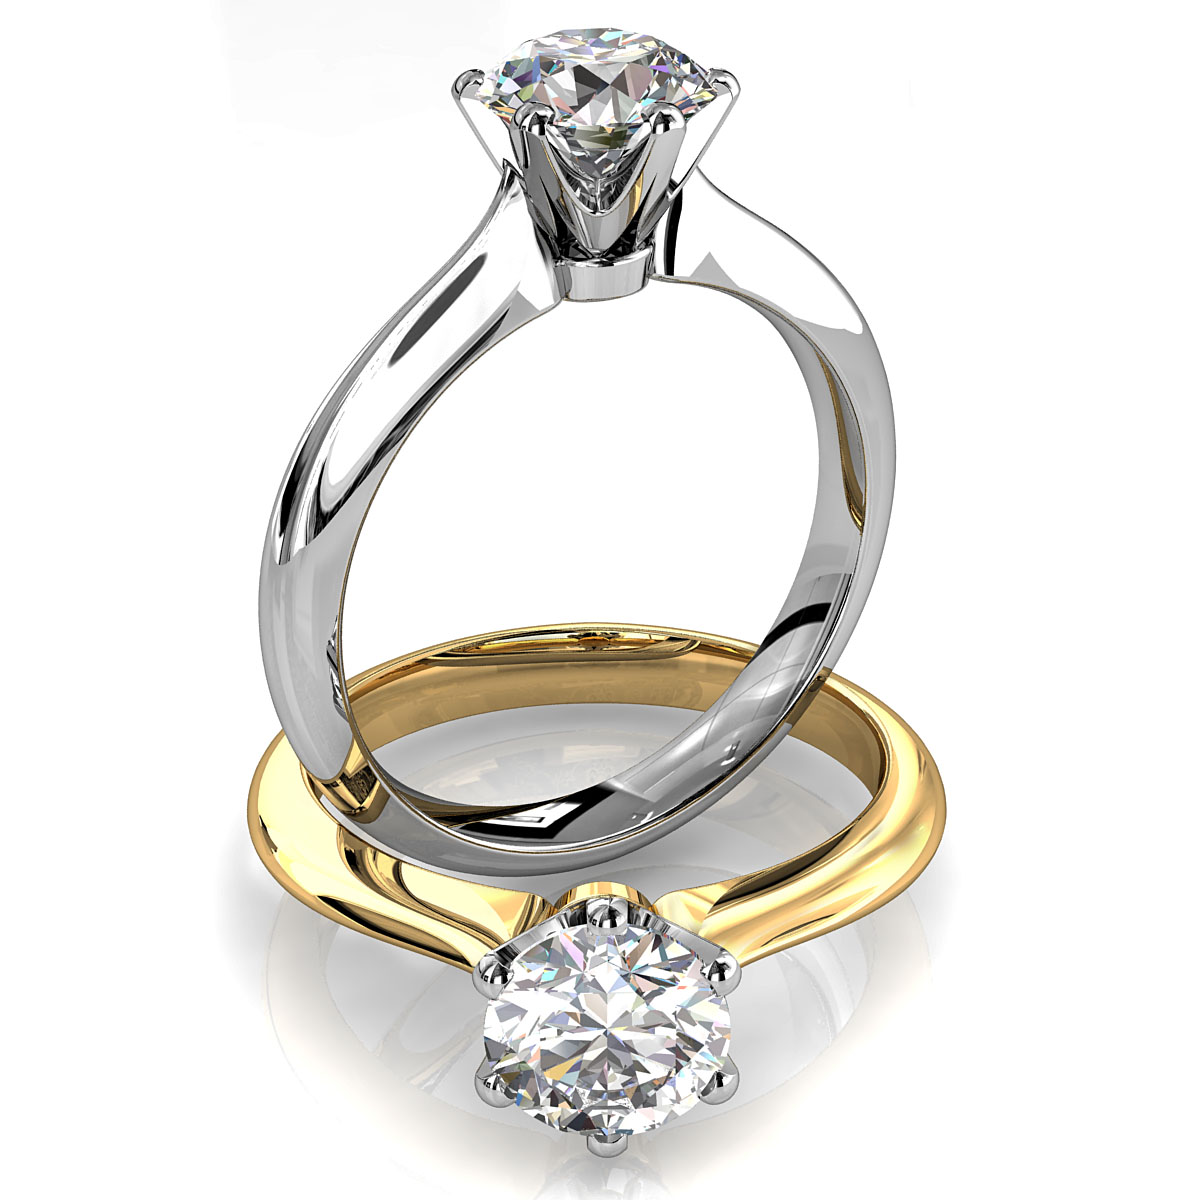 Round Brilliant Cut Solitaire Diamond Engagement Ring, 6 Button Claws Set on Tapered Knife Edge Rounded Band with Crown Undersetting.